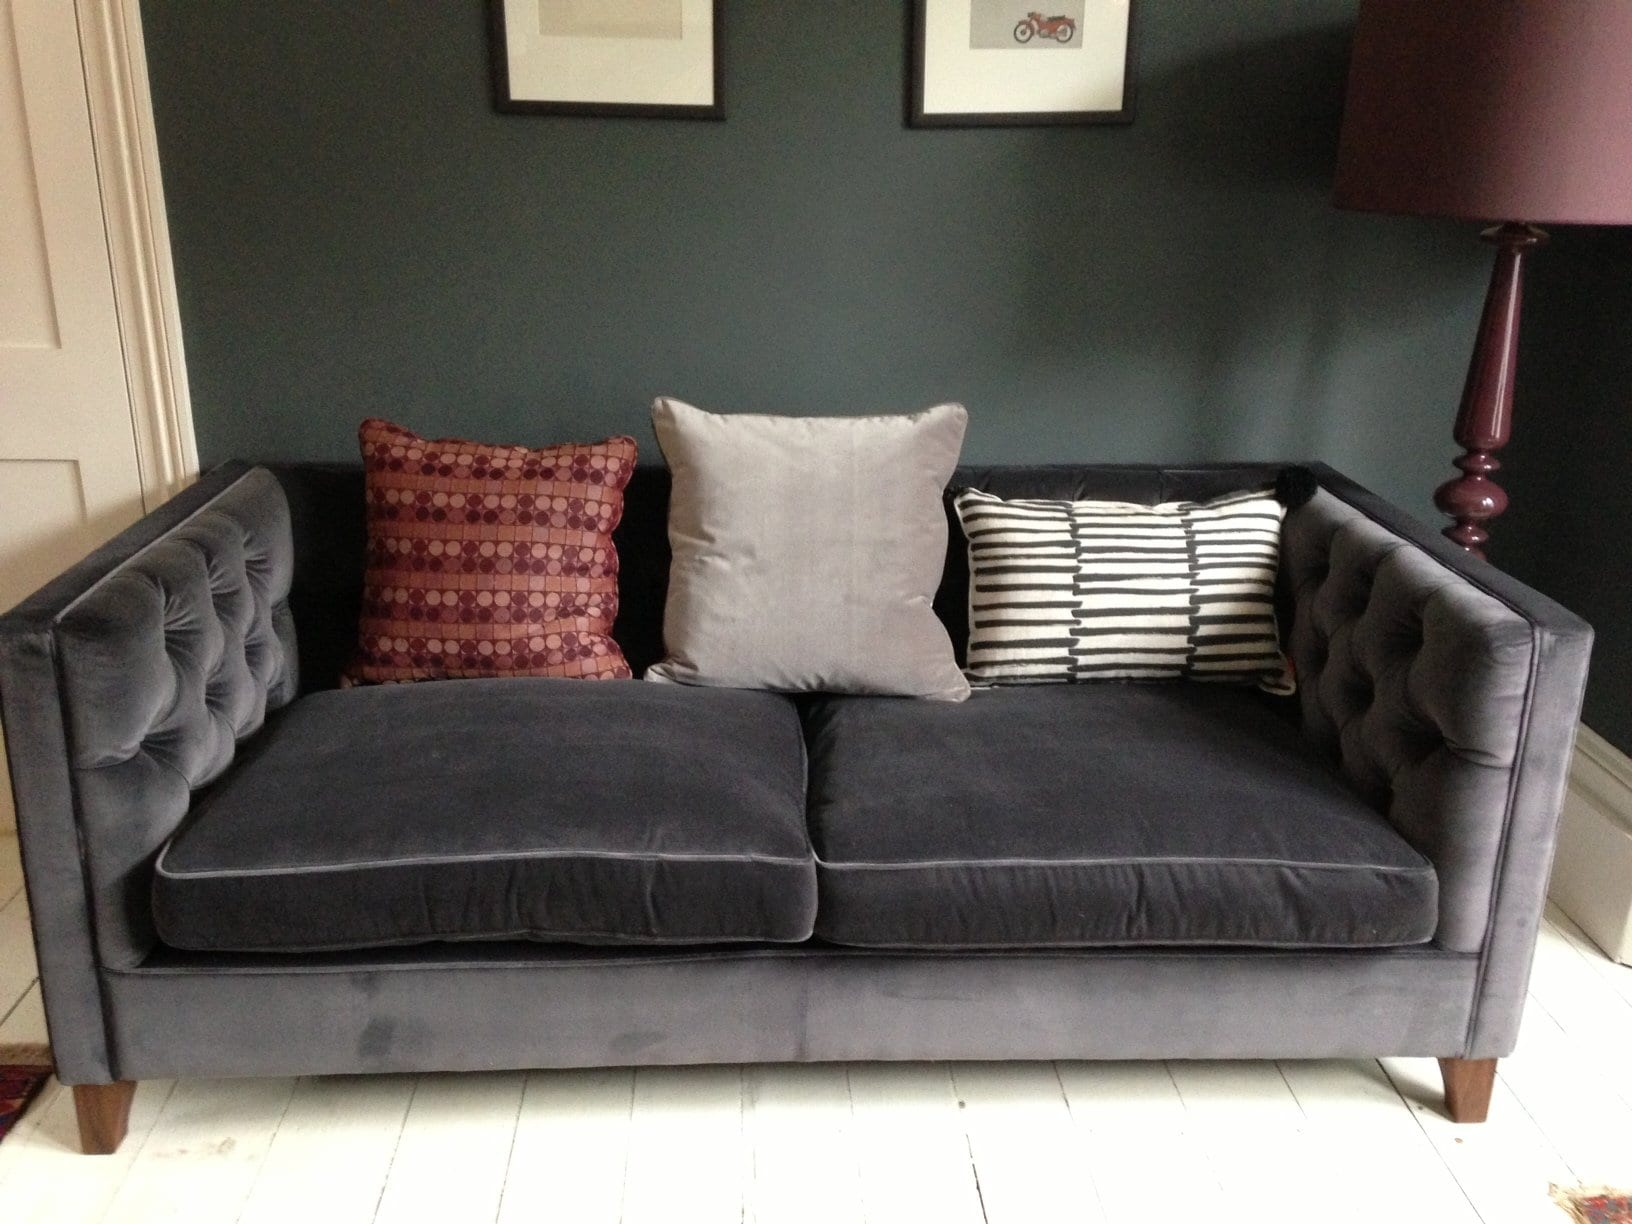 velvet grey tufted sofa anthropologie emerald green  loccie better homes gardens ideas